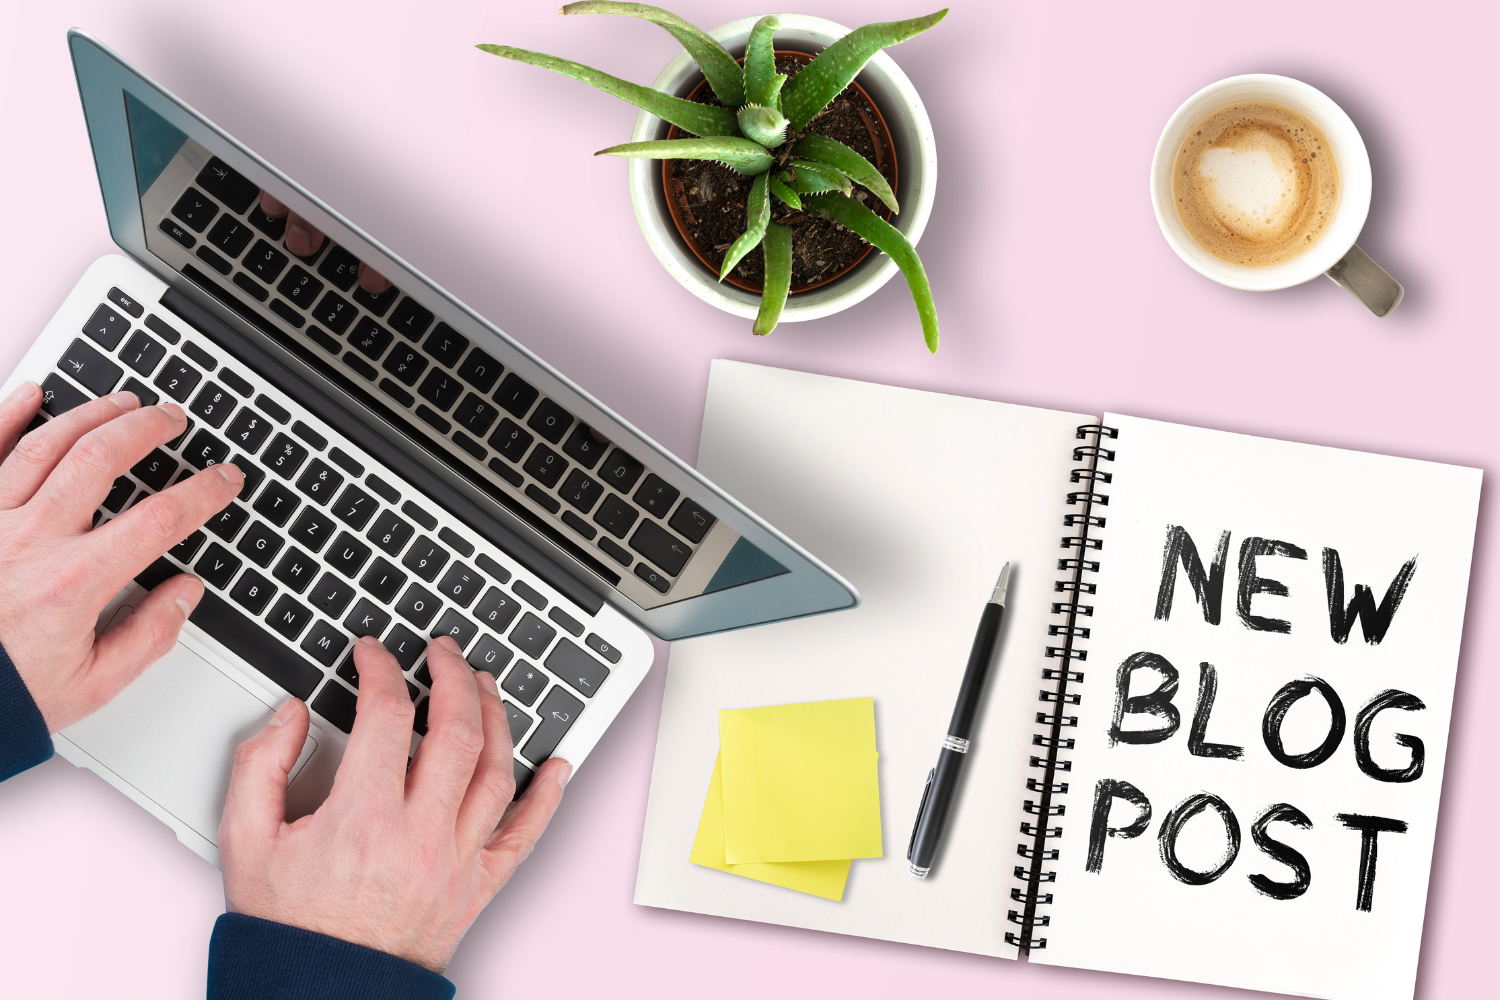 How to Write an Awesome Blog Post in 5 Steps